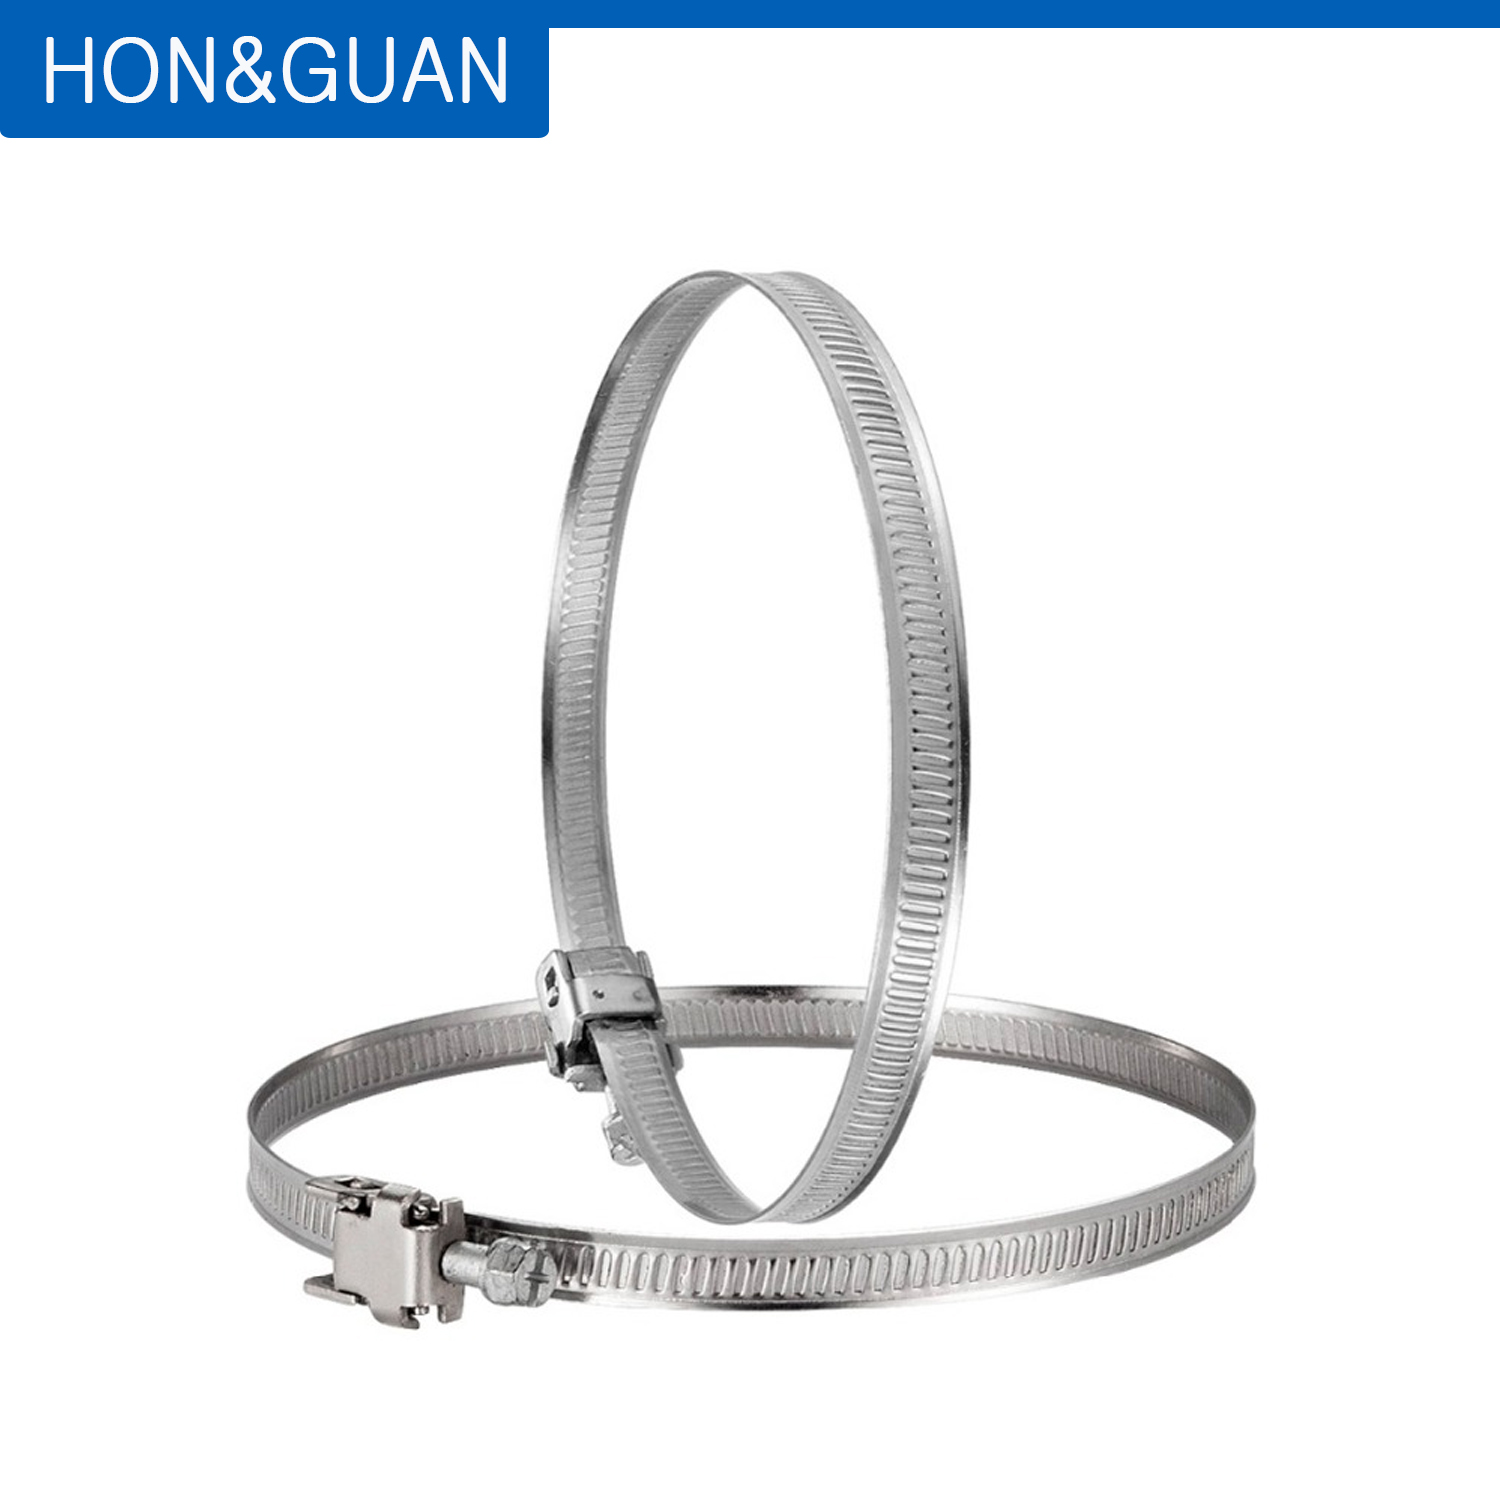 2pcs 4inch <font><b>100mm</b></font> Stainless Steel Hose Clamps Hose Clips <font><b>Duct</b></font> Clamp image